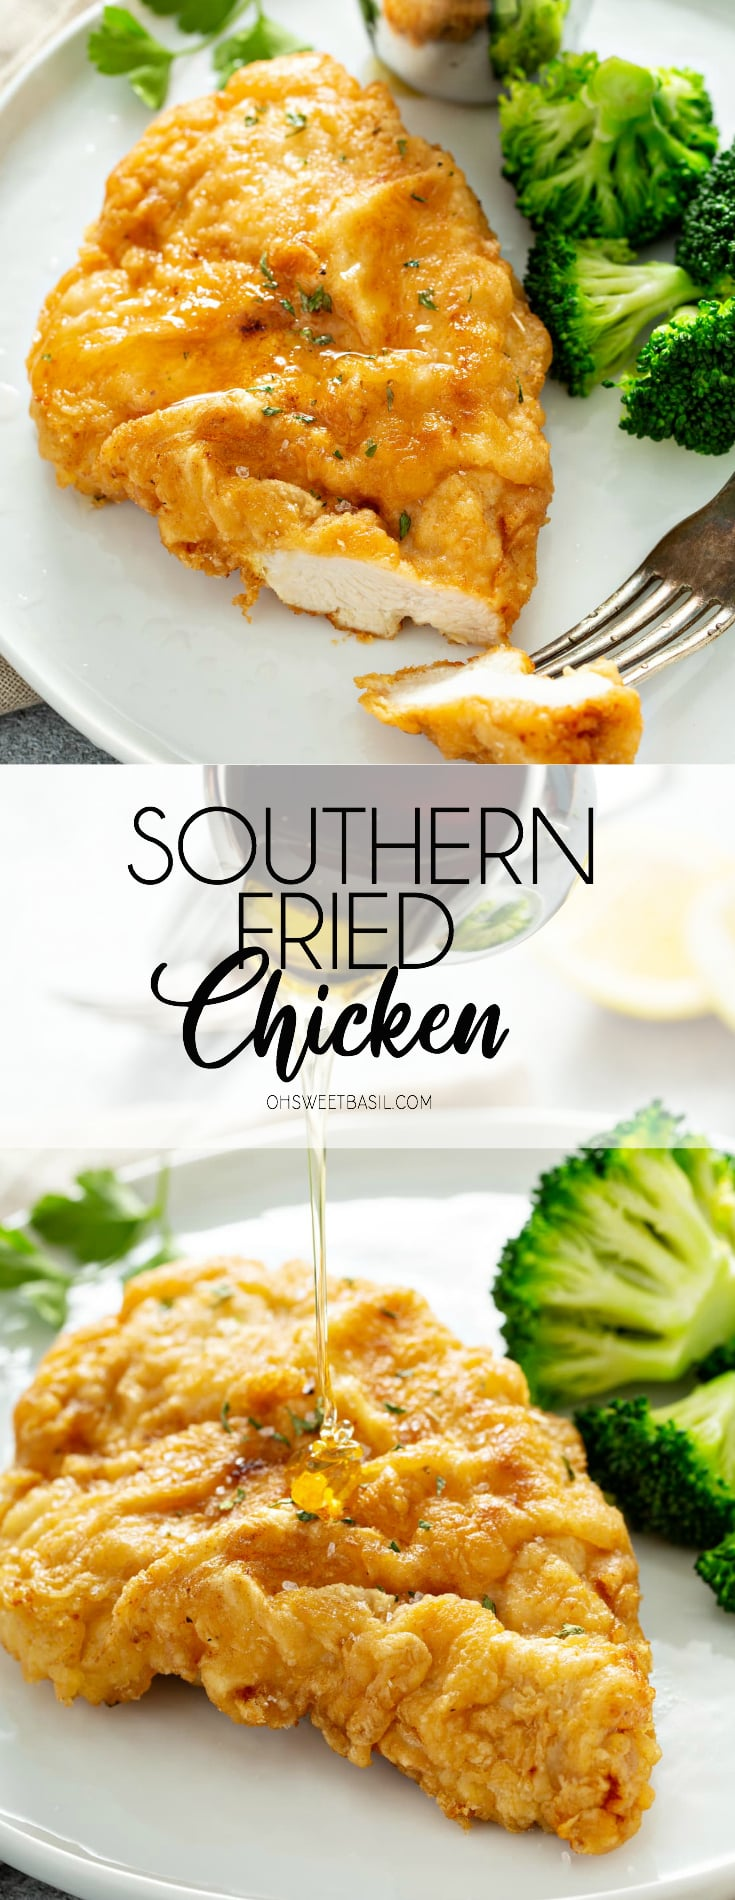 A white dinner plate containing golden brown fried chicken breast with broccoli and a silver container of dipping sauce on the side. There is a fork with a slice of chicken on it, resting on the plate.